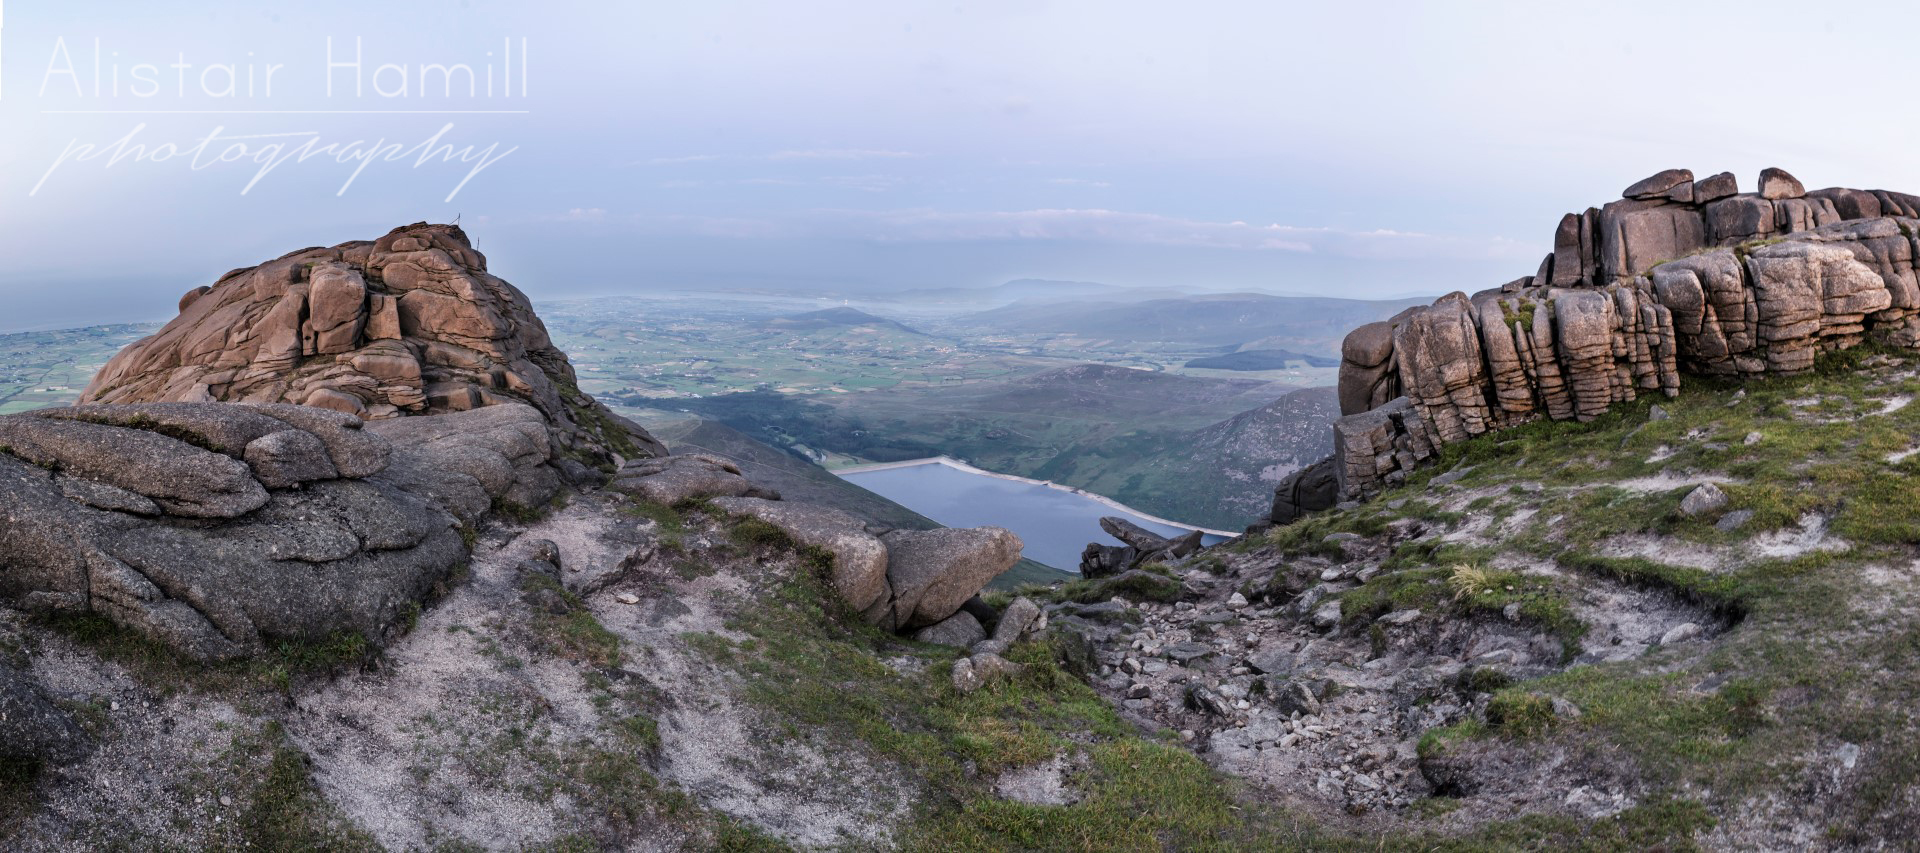 Silent Valley reservoir, as glimpsed from between two of the south tors.